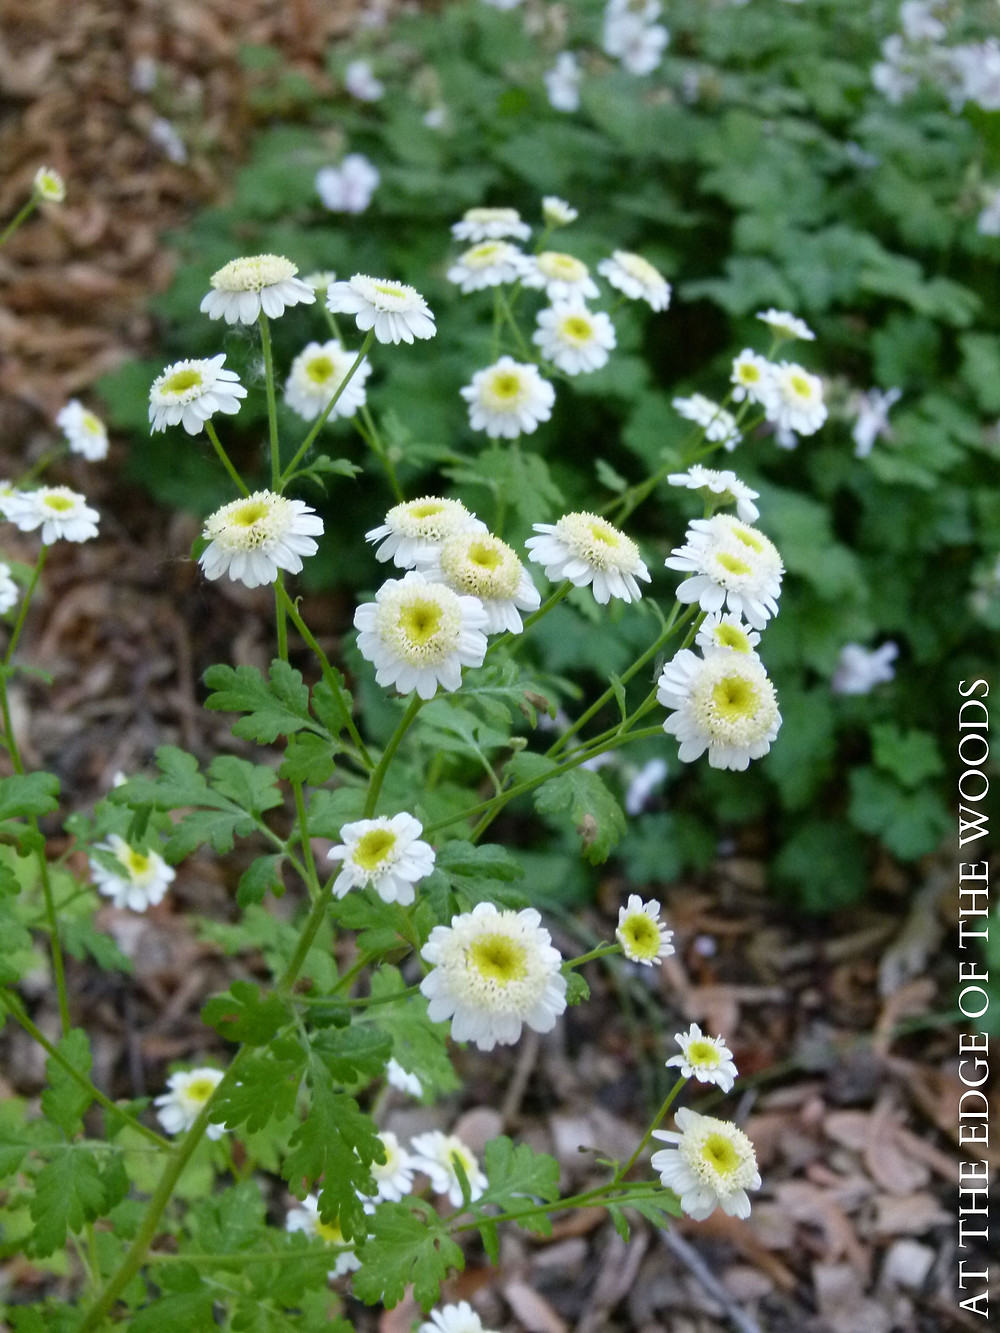 feverfew grows wild around the base of the sunroom foundation